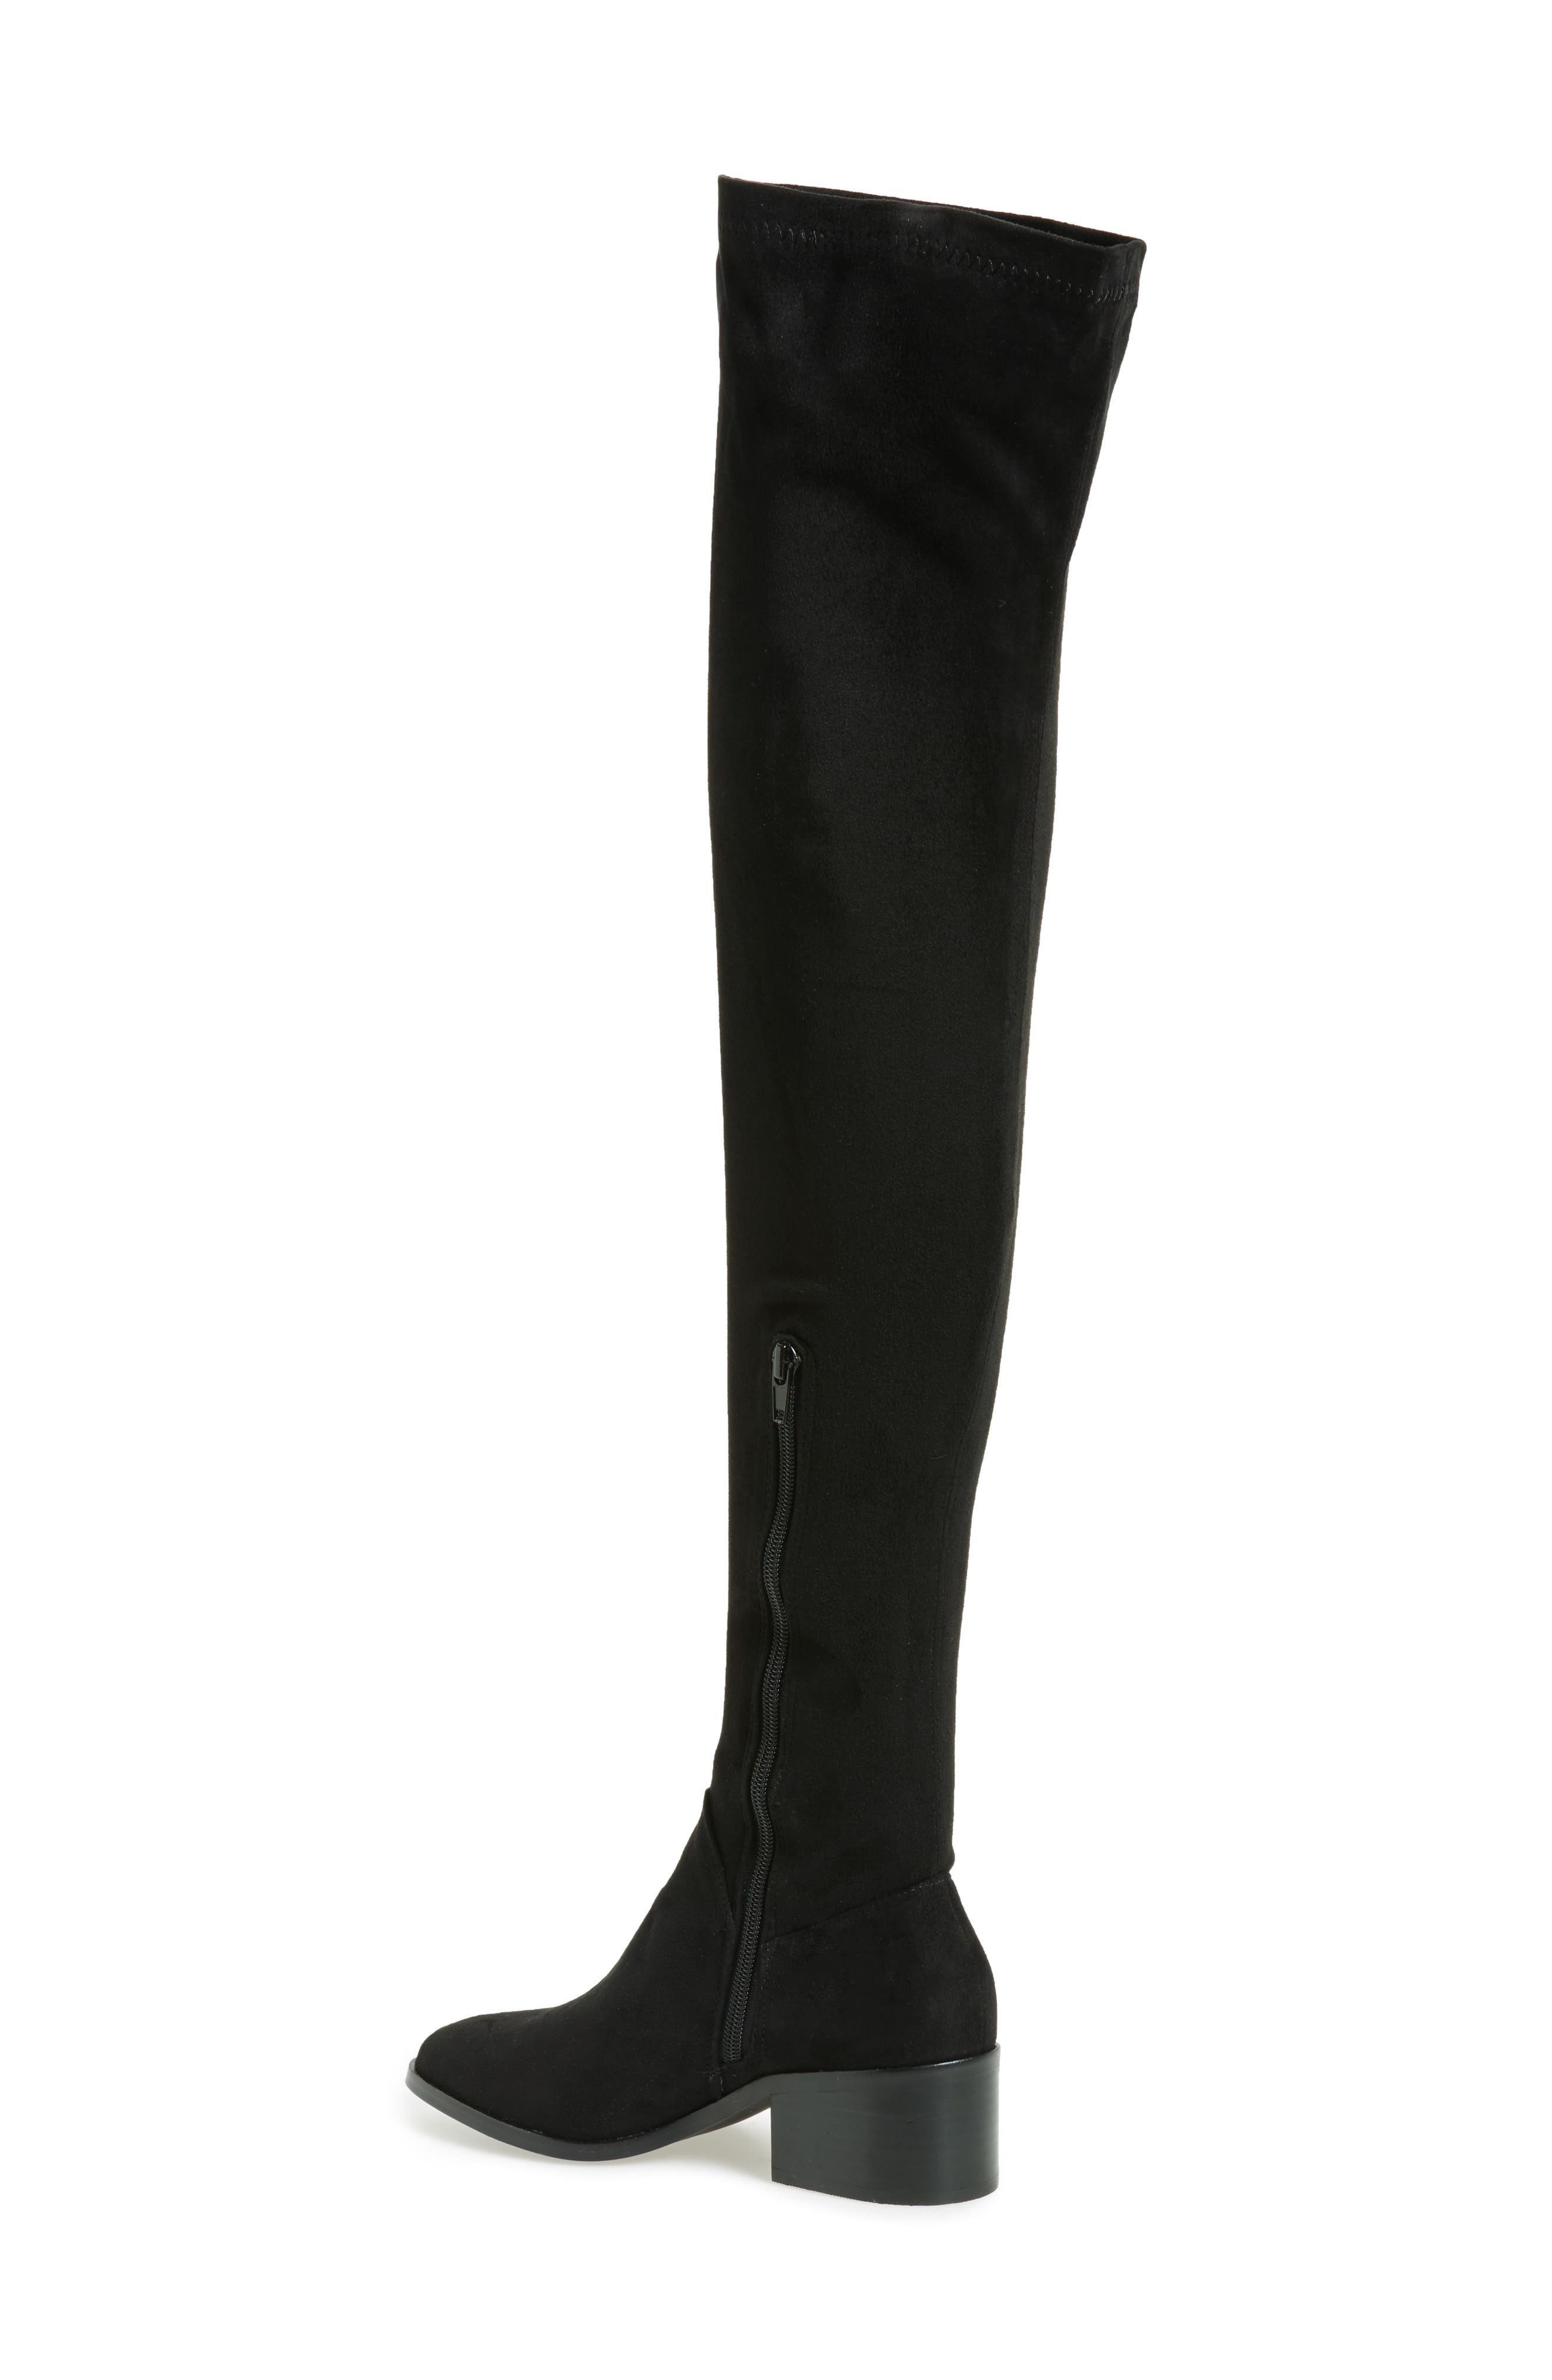 STEVE MADDEN,                             Gabriana Stretch Over the Knee Boot,                             Alternate thumbnail 2, color,                             001